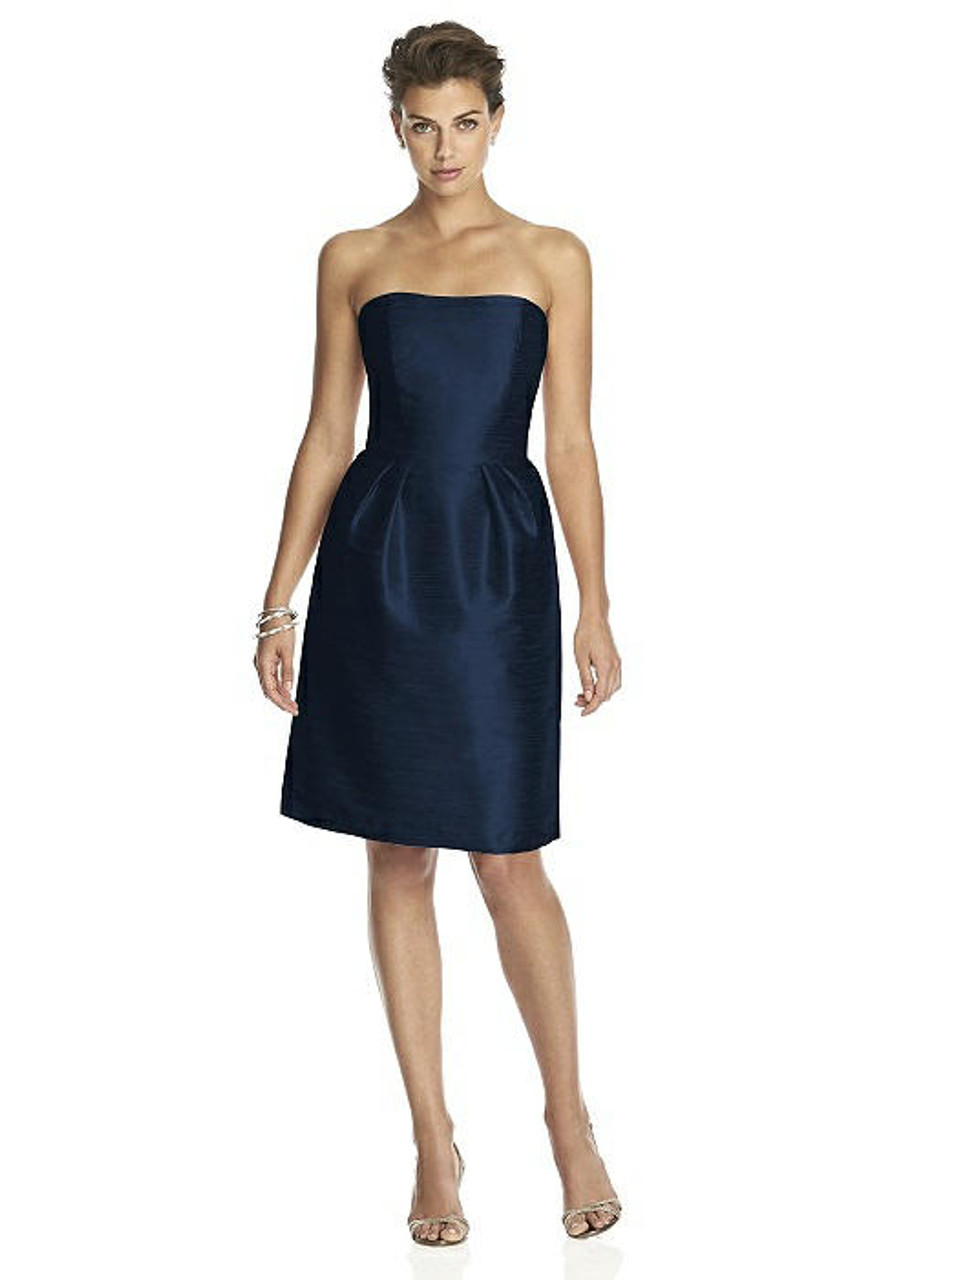 Alfred Sung Dress Style D614 - Midnight - Dupioni - In Stock Dress